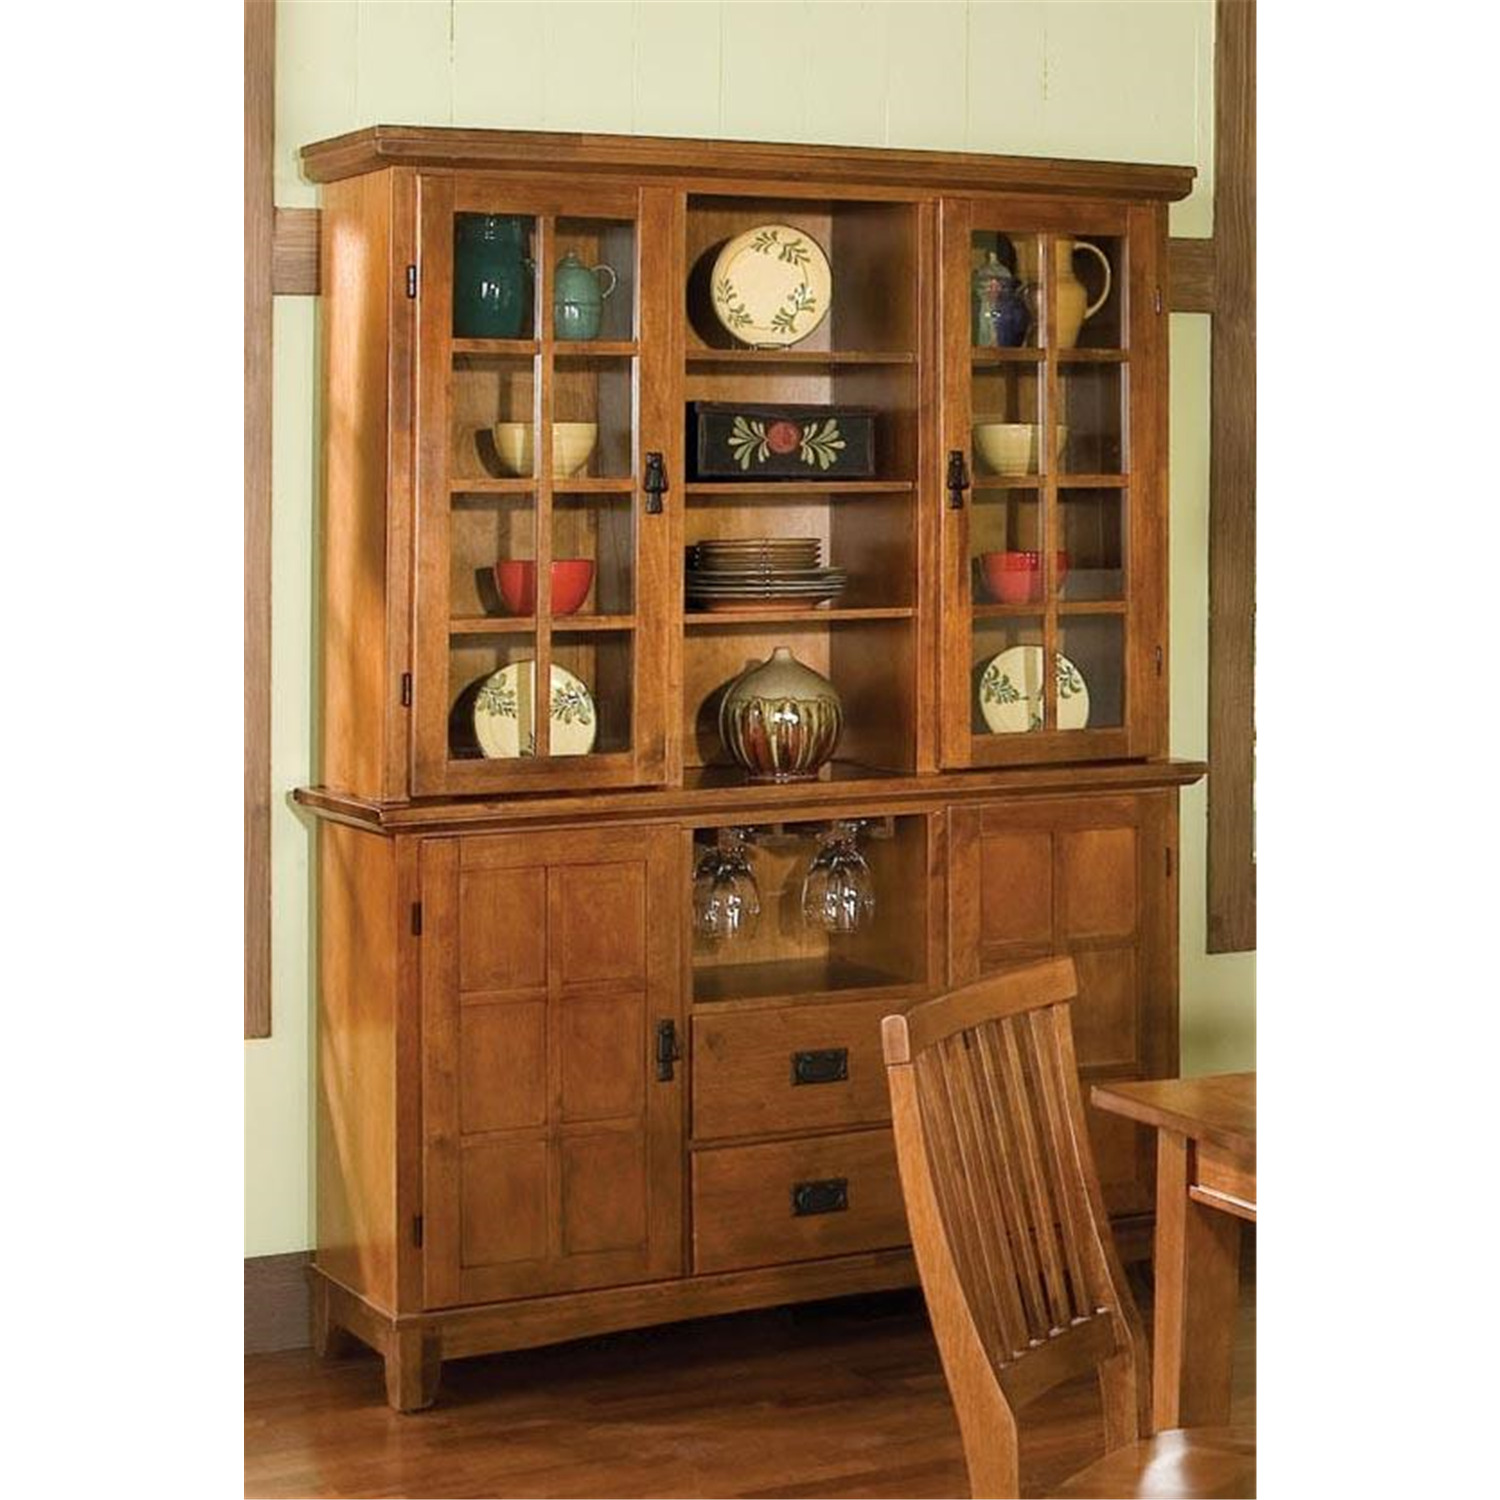 arts and crafts dining buffet and hutch from 1149 99 to 1151 99 rh ojcommerce com Arts and Crafts Style House Arts and Crafts Style Design